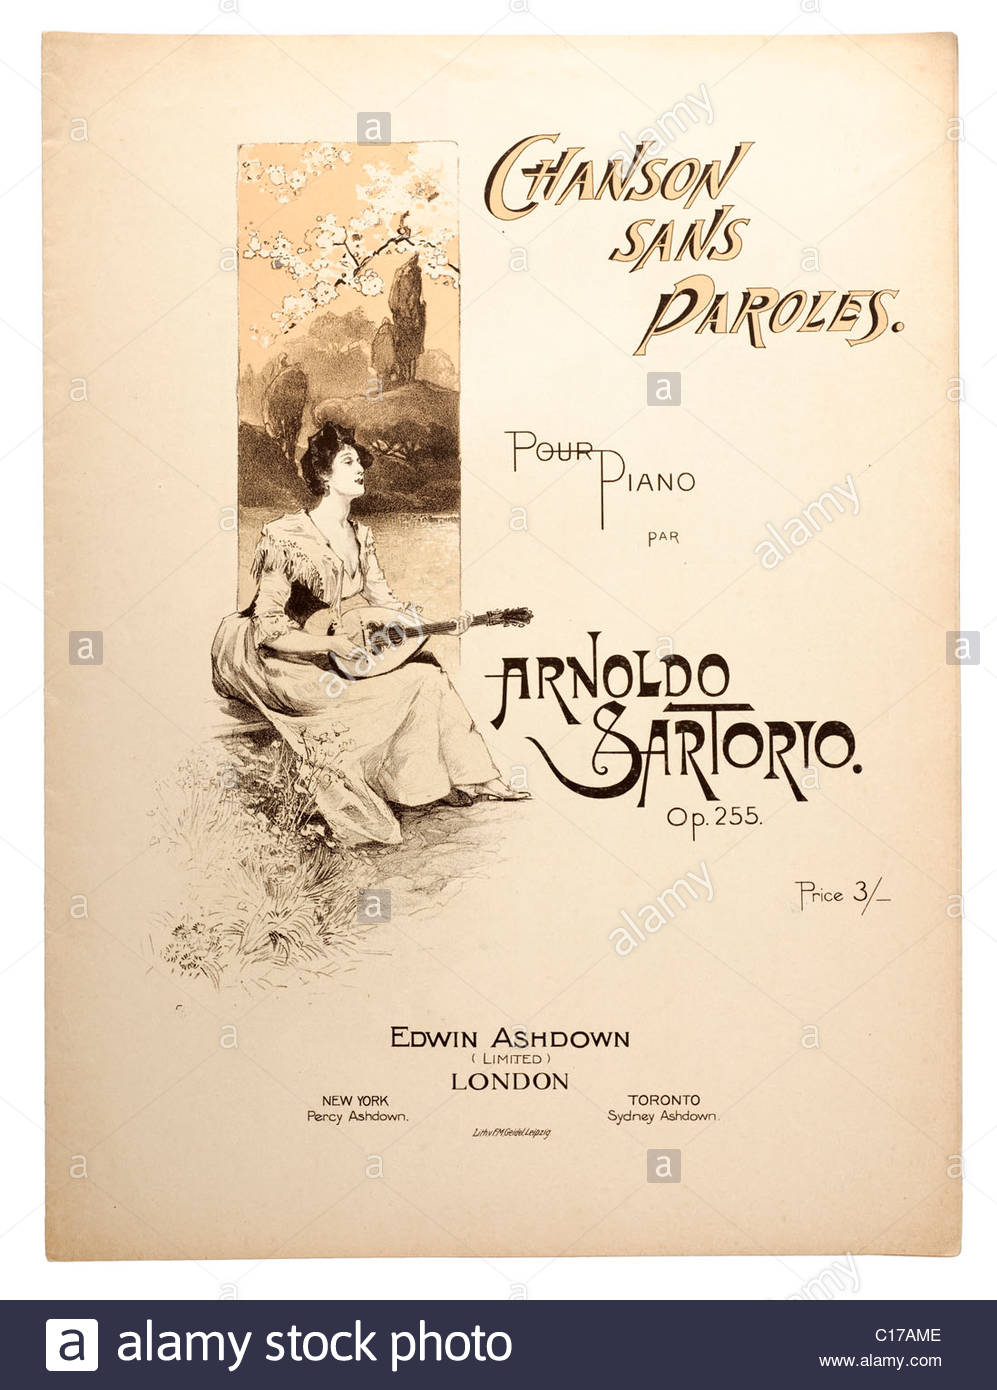 Old Sheet Music Front Cover From 1900 Titled Chanson Sans Paroles